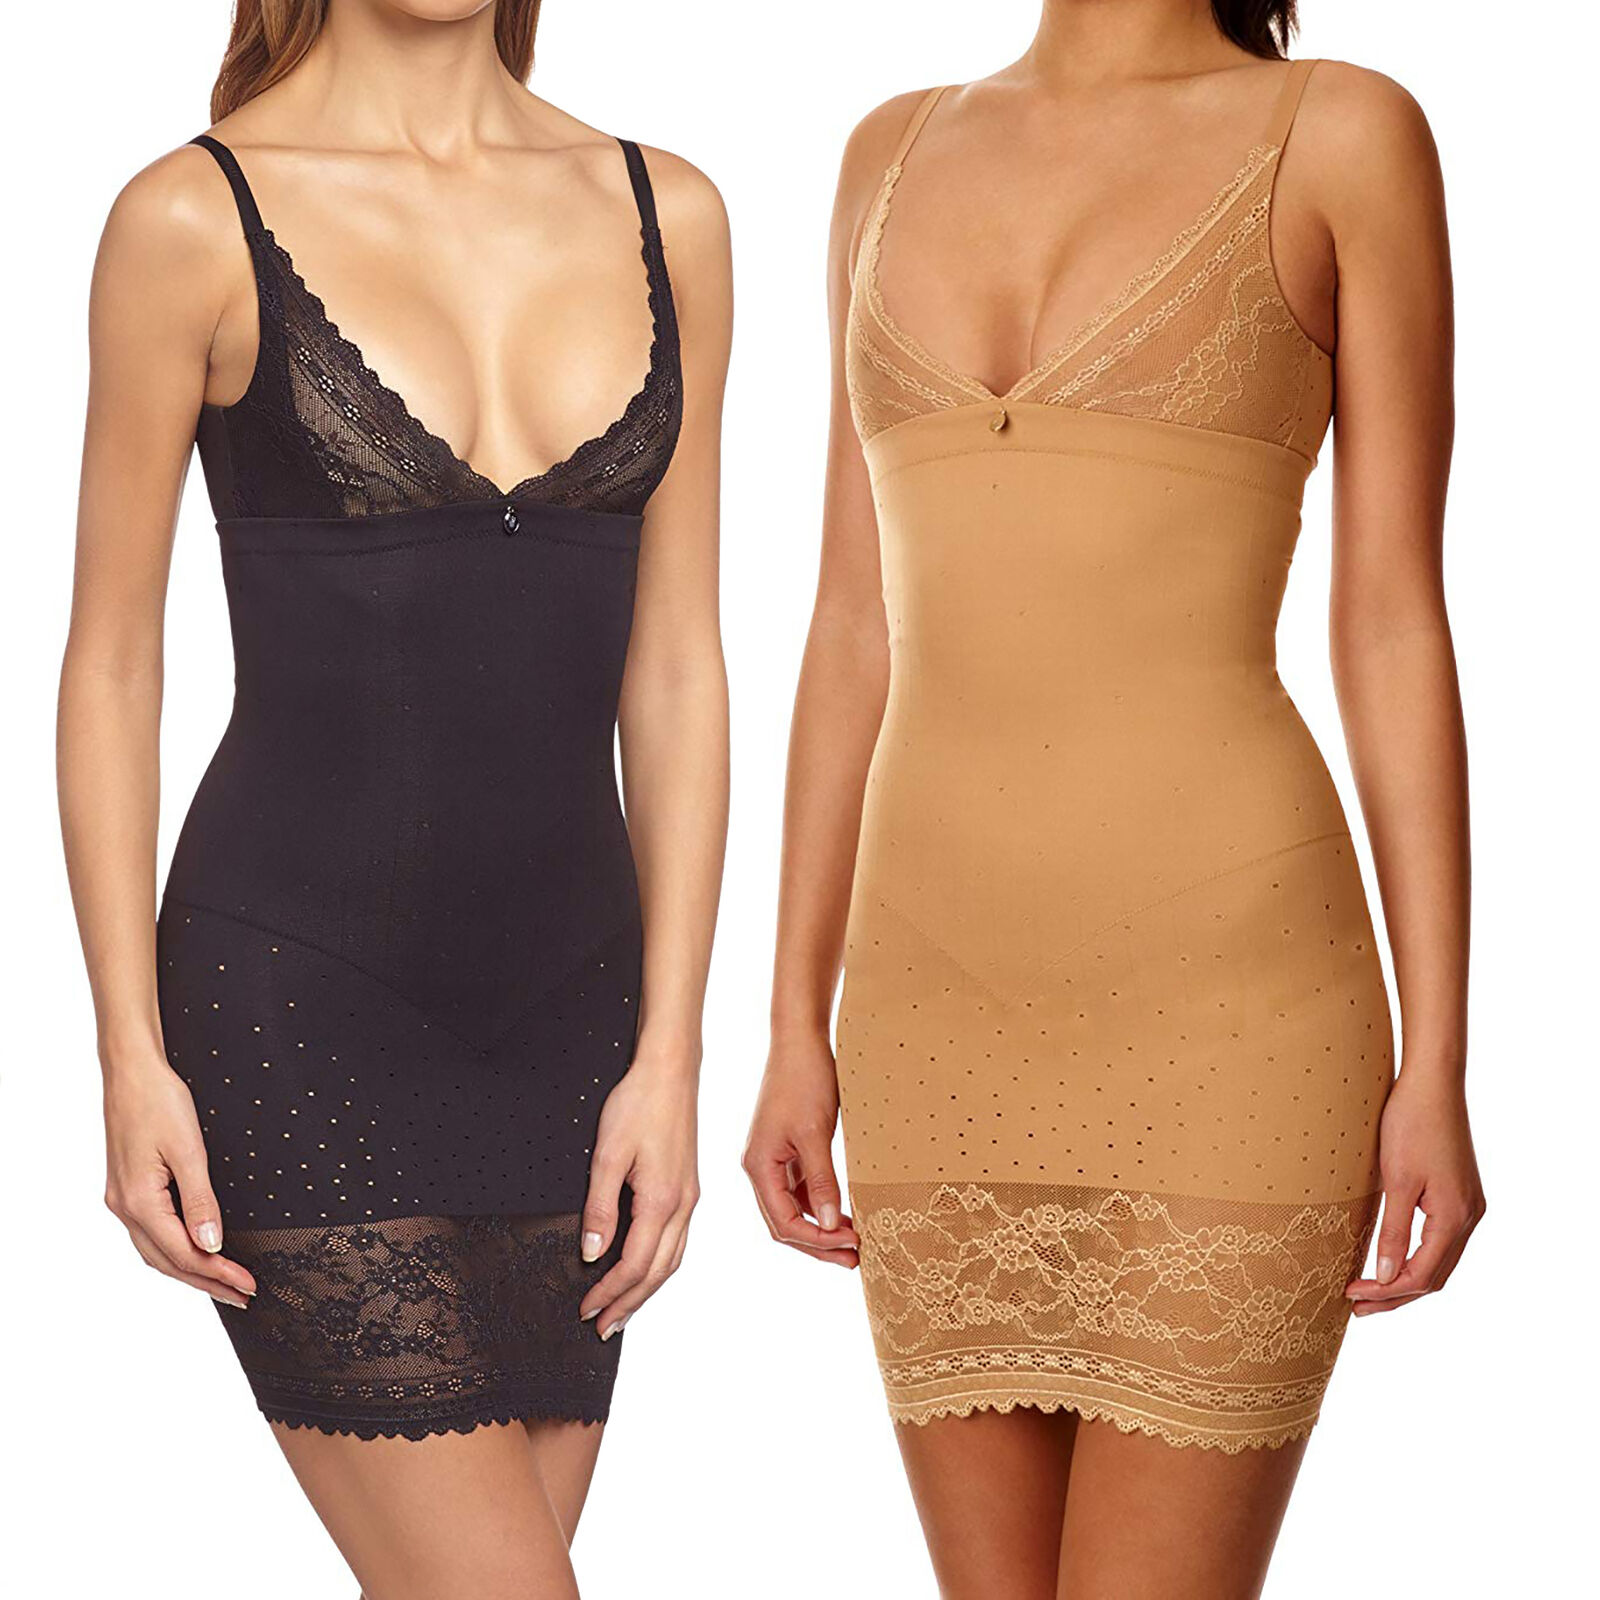 Triumph Lace Sensation Bodydress Damen Body Shaping Kleid Miederkleid NEU